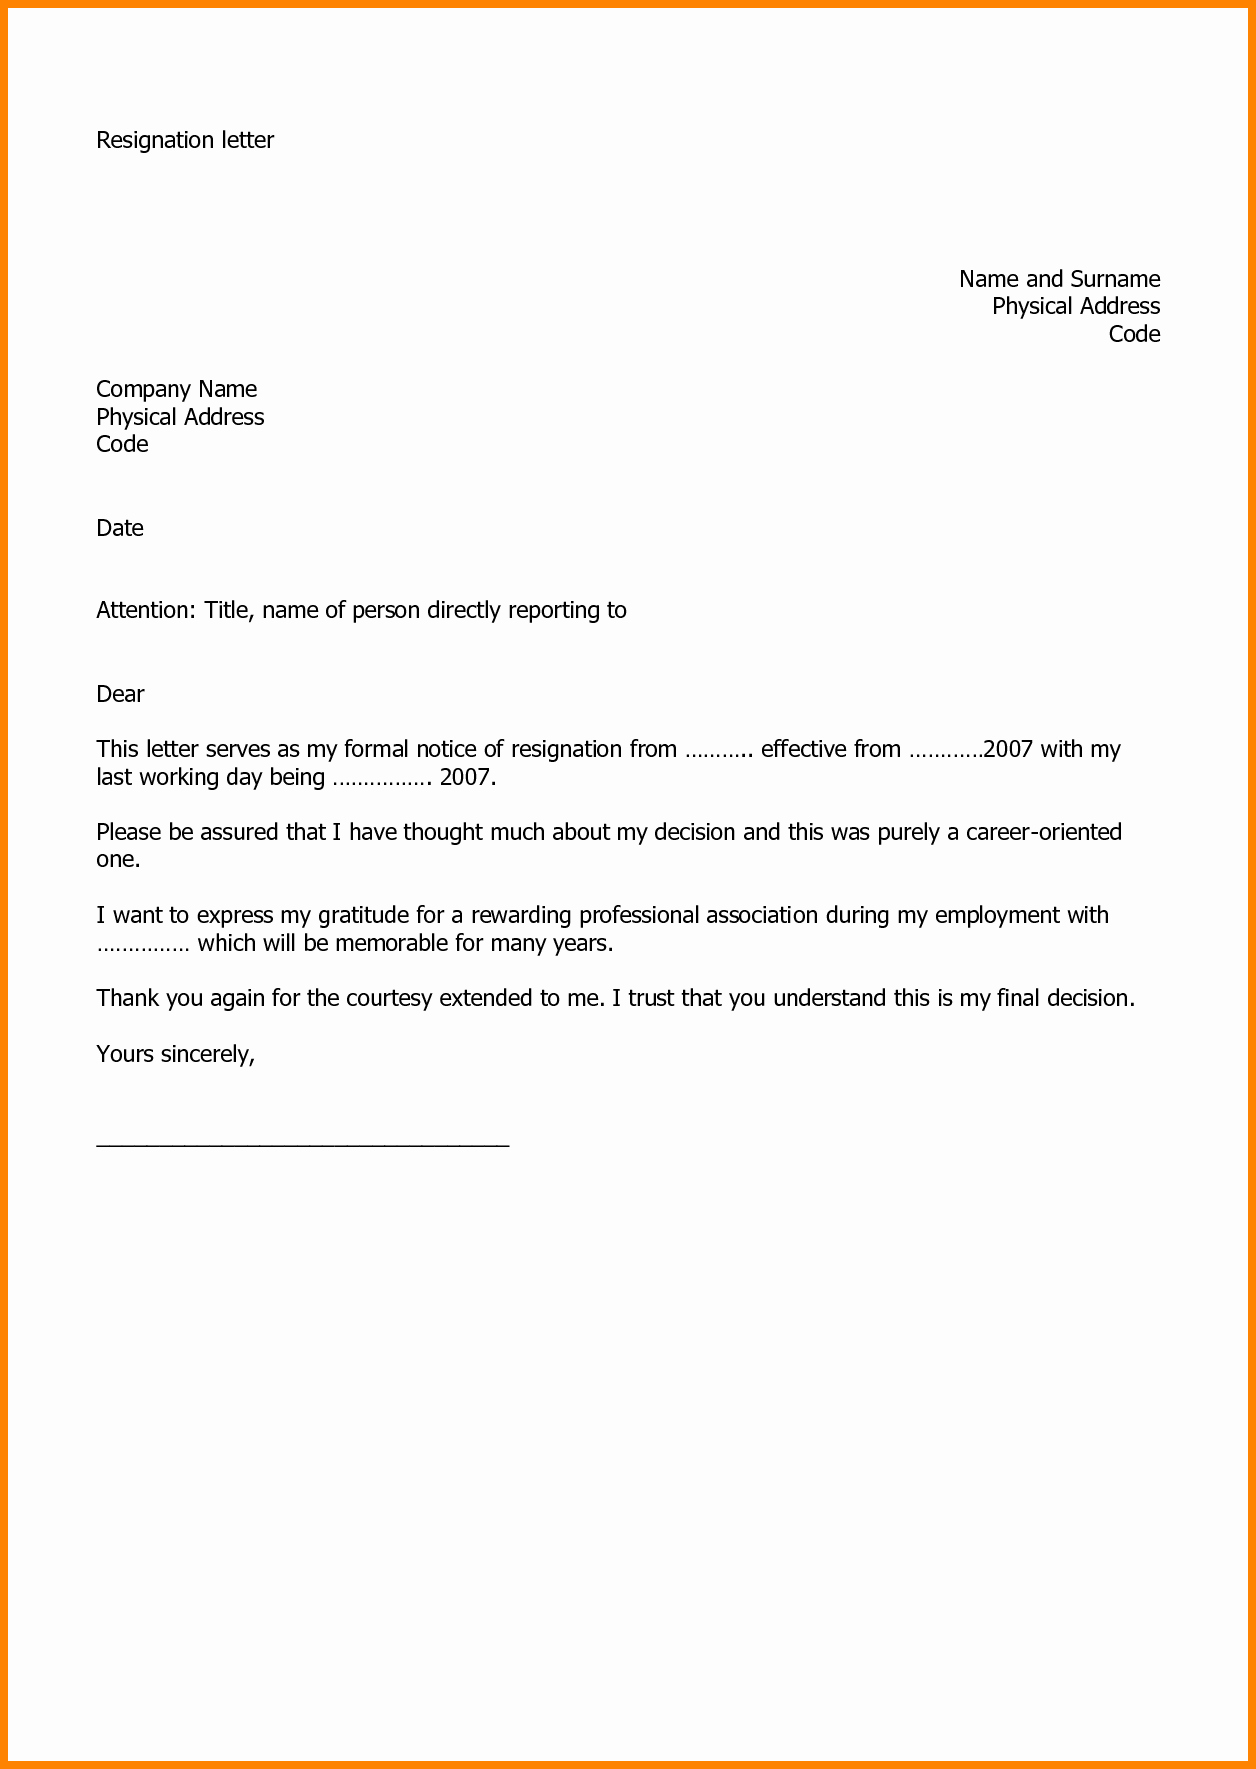 Resign Letter Sample New Pin by Mike Marischler On Health